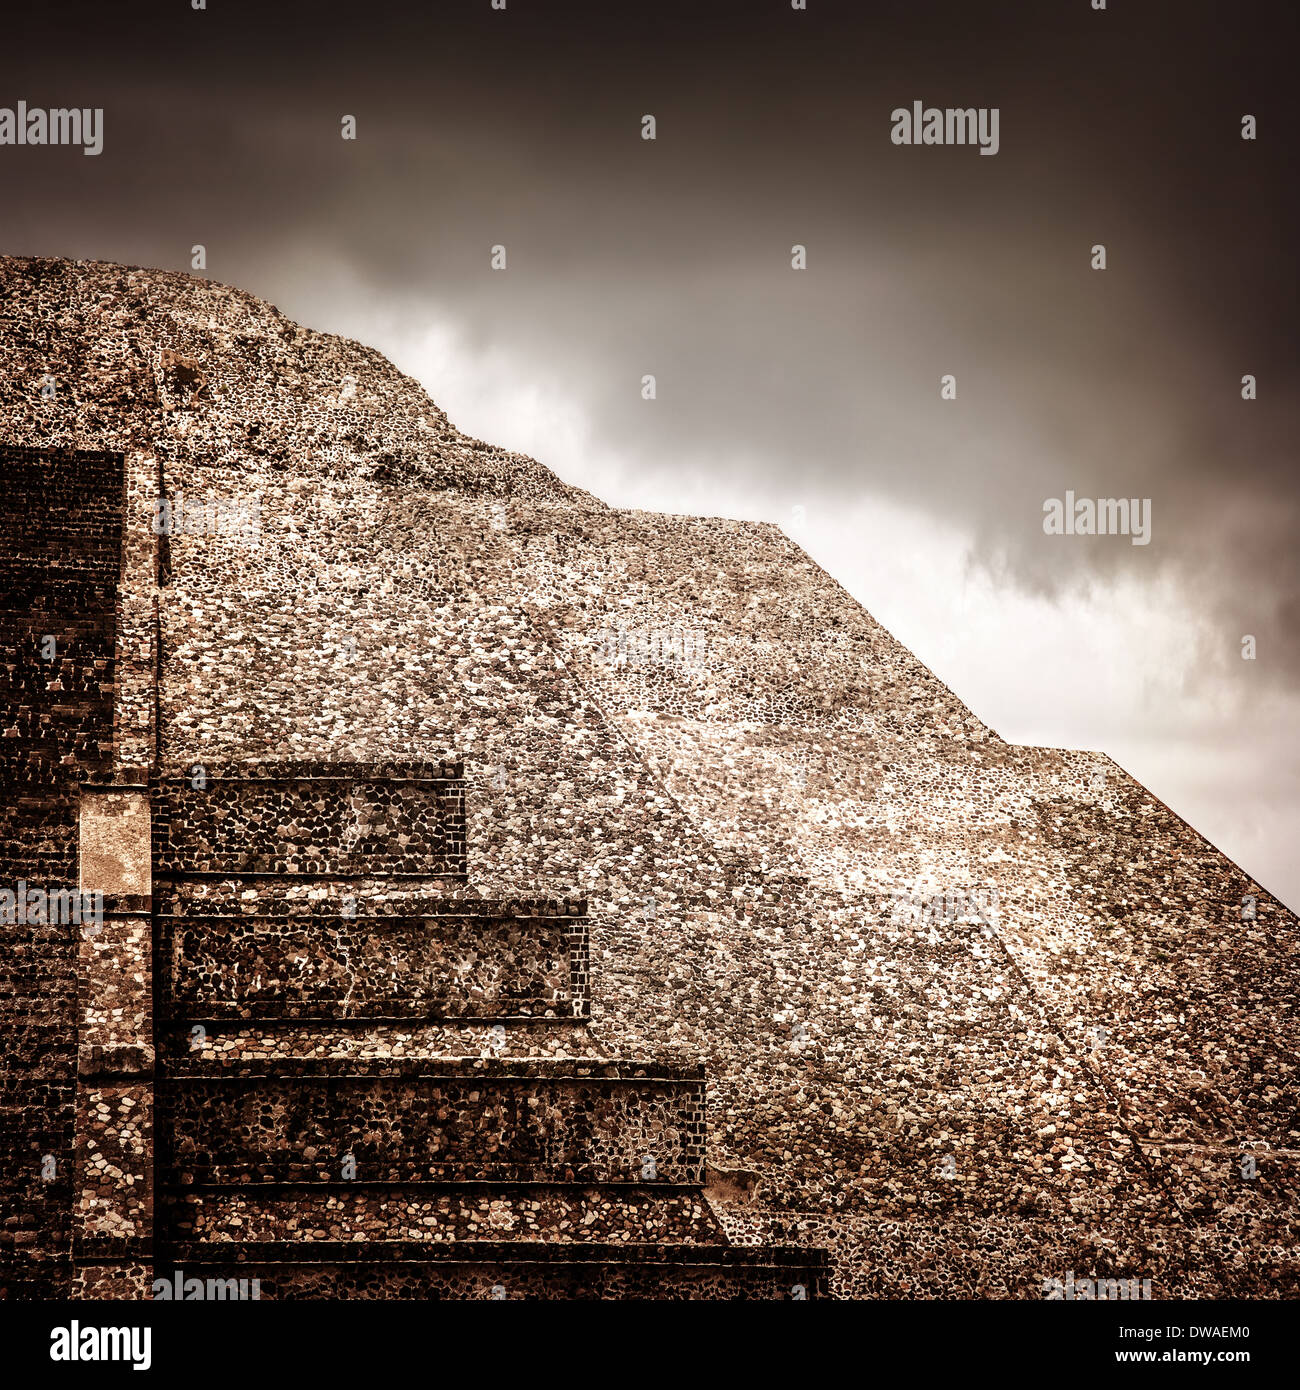 Famous Mexican Pyramid Ancient Religious Ruins On North America Overcast Weather Cloudy Sky Pre Columbian Architecture